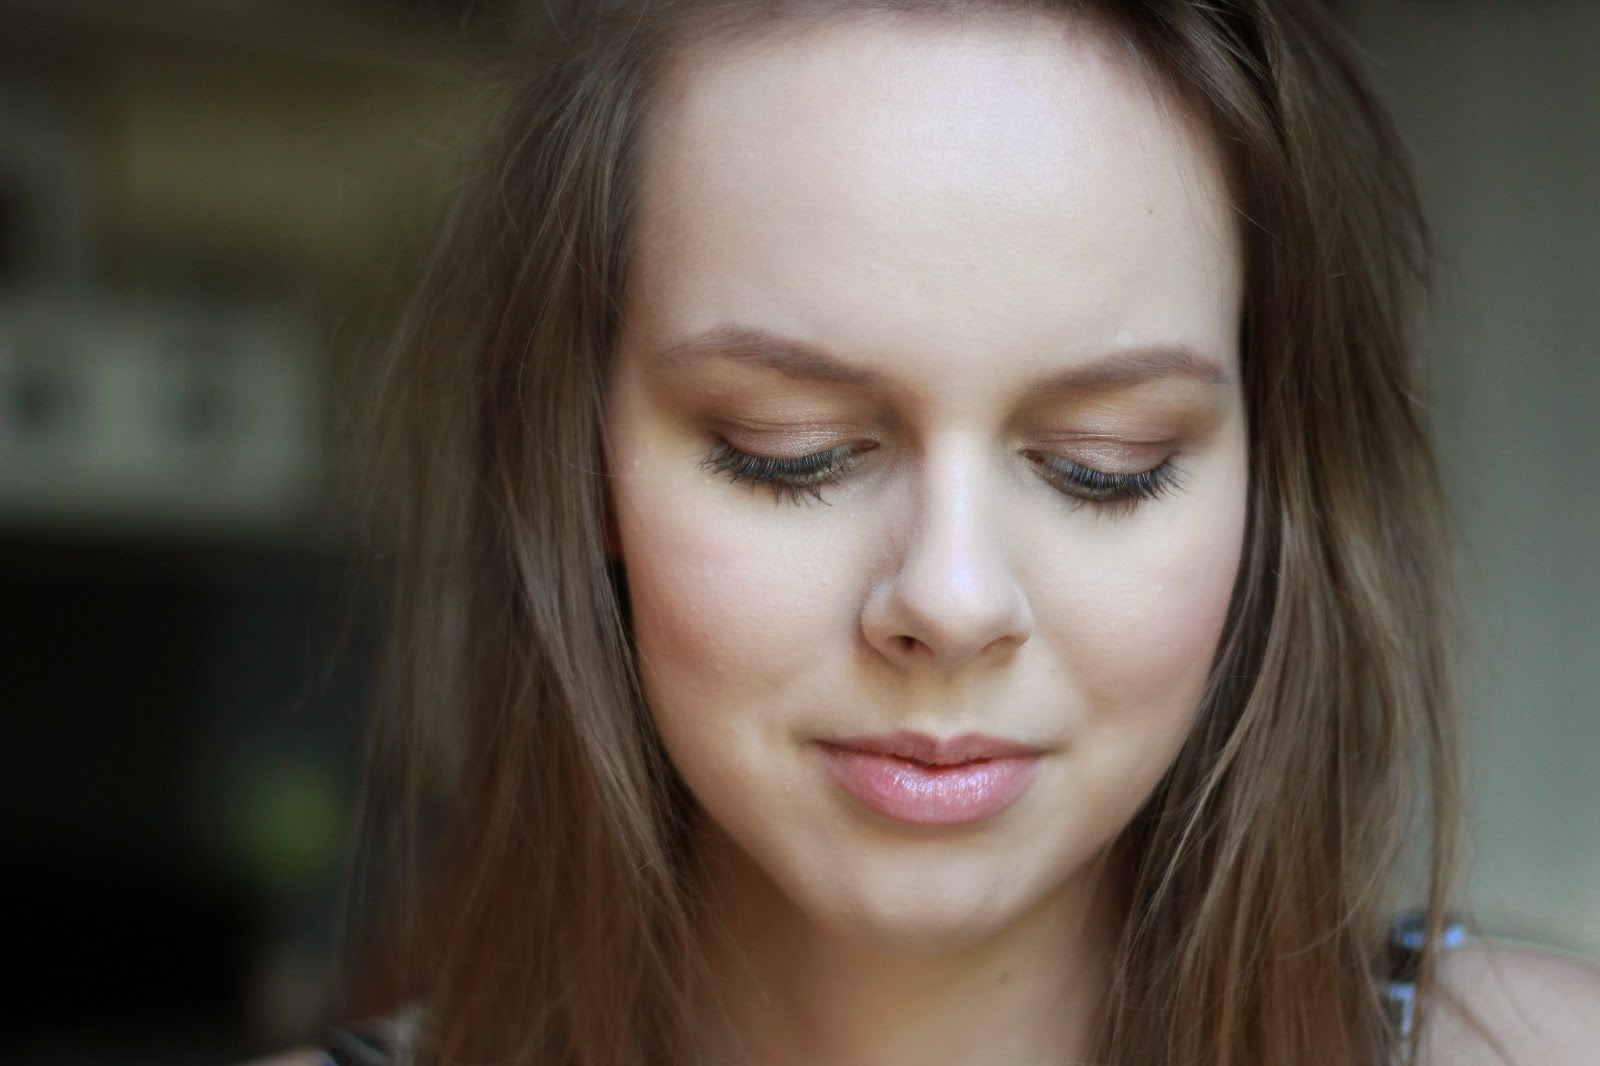 scarlett johansson inspired make-up beautyblog